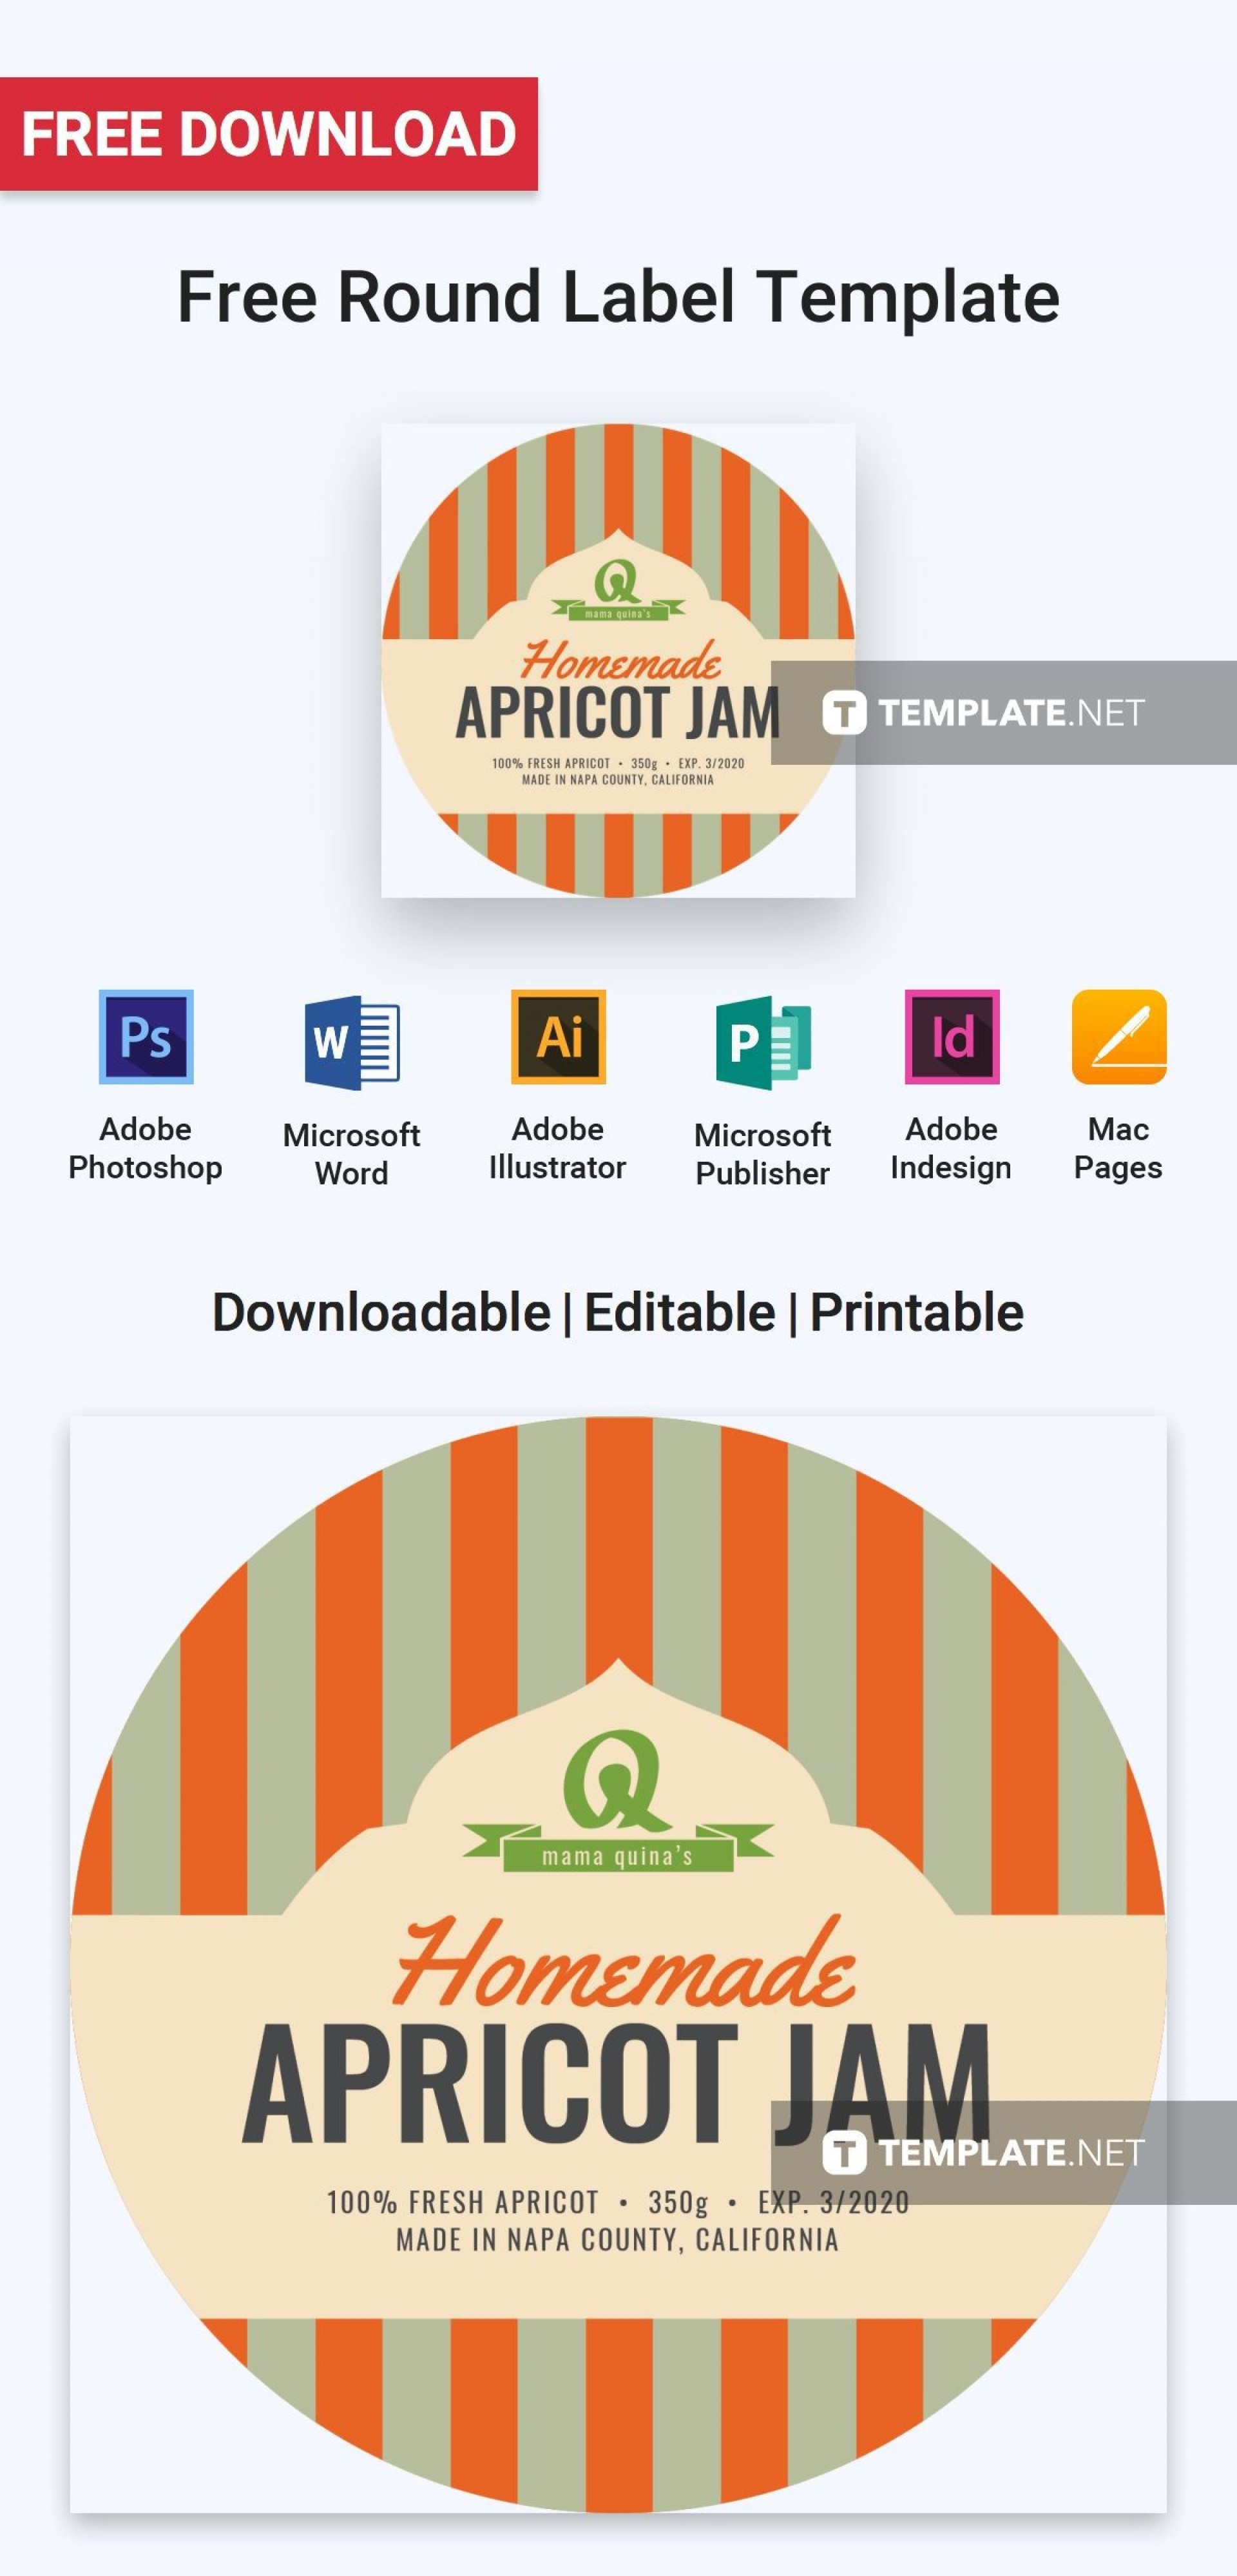 003 Surprising Microsoft Word Label Template Free Download High Definition 1920